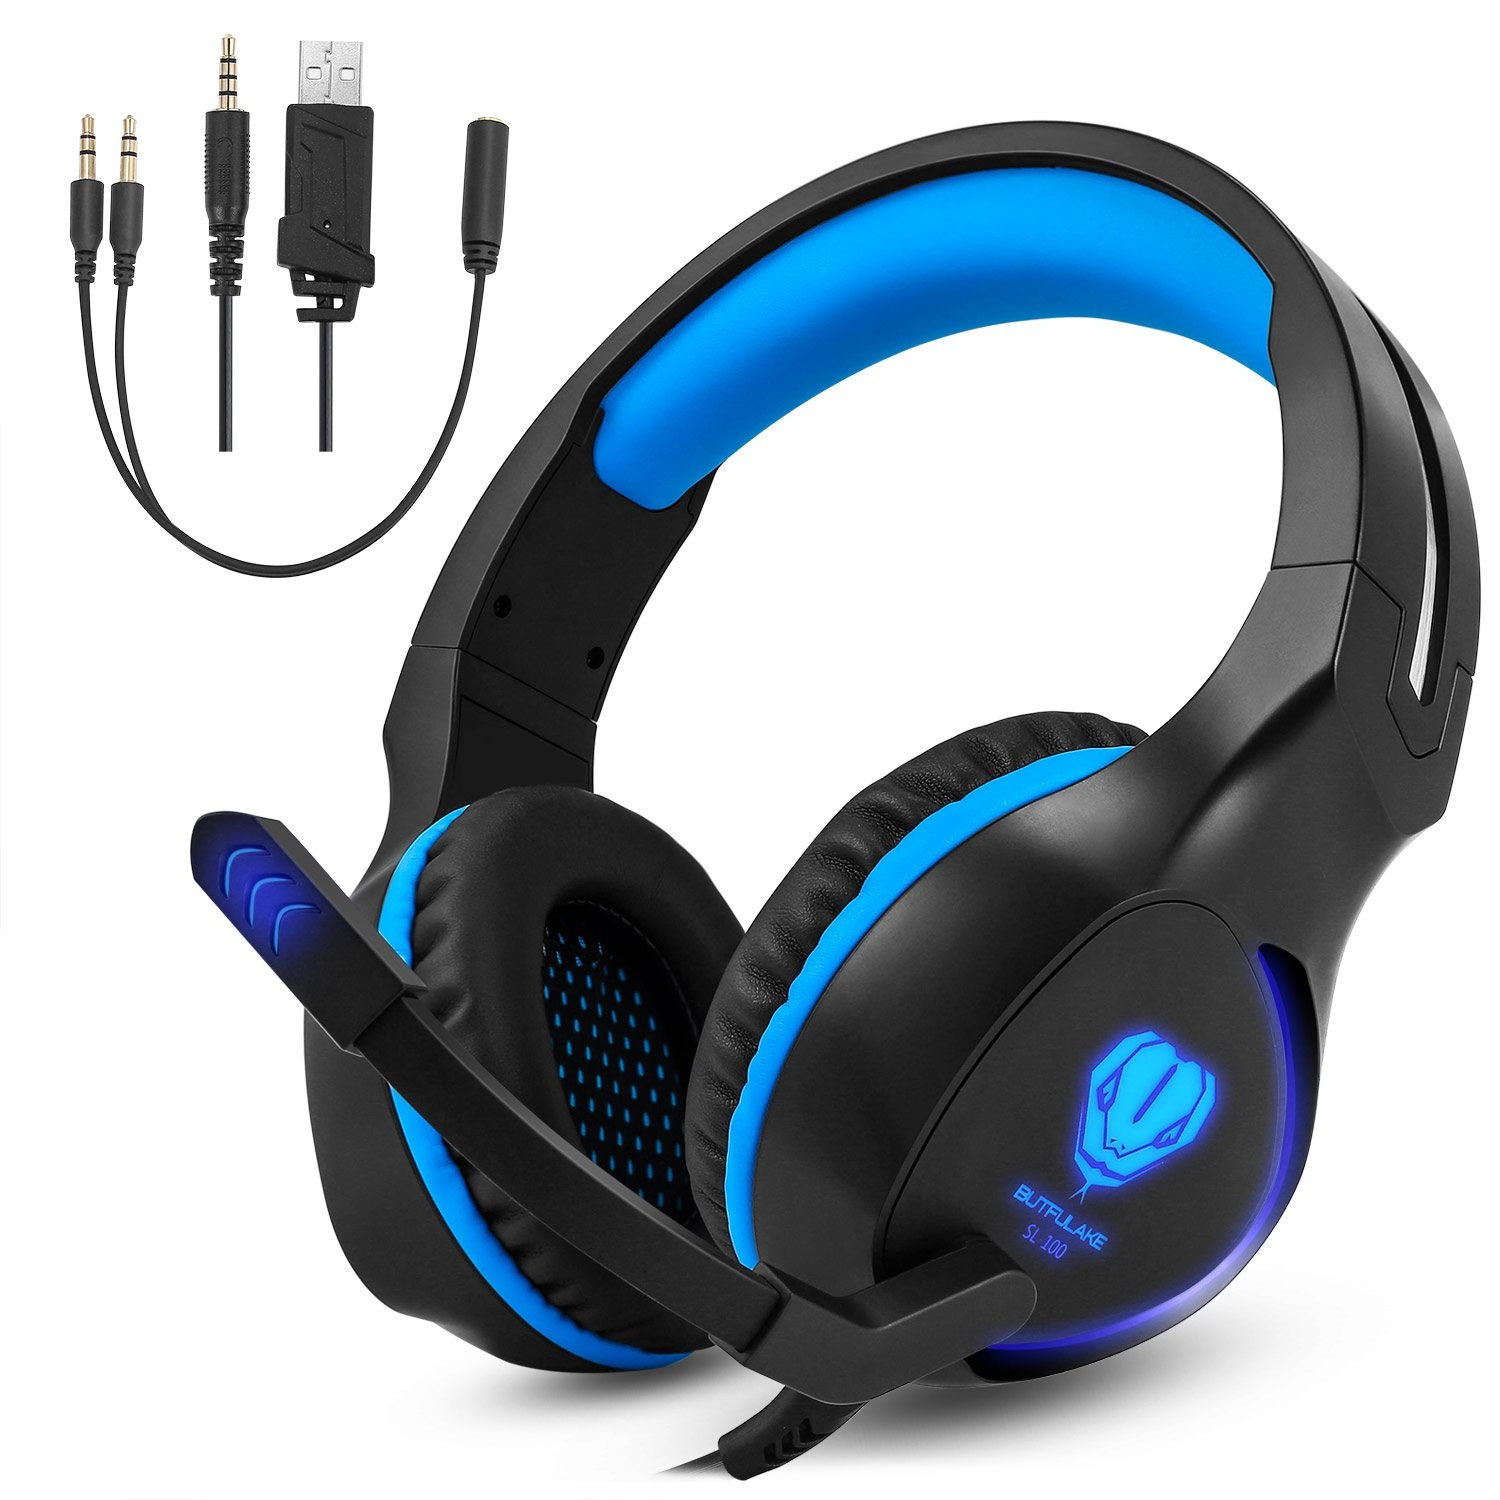 BUTFULAKE Stereo Gaming Headset for PS4 Xbox One Nintendo Switch, Noise Cancelling 3.5mm Wired Adjustable Over-Ear with Mic, Volume Control and LED Lights for Laptop PC Mac iPad Smartphones (Blue) by BUTFULAKE